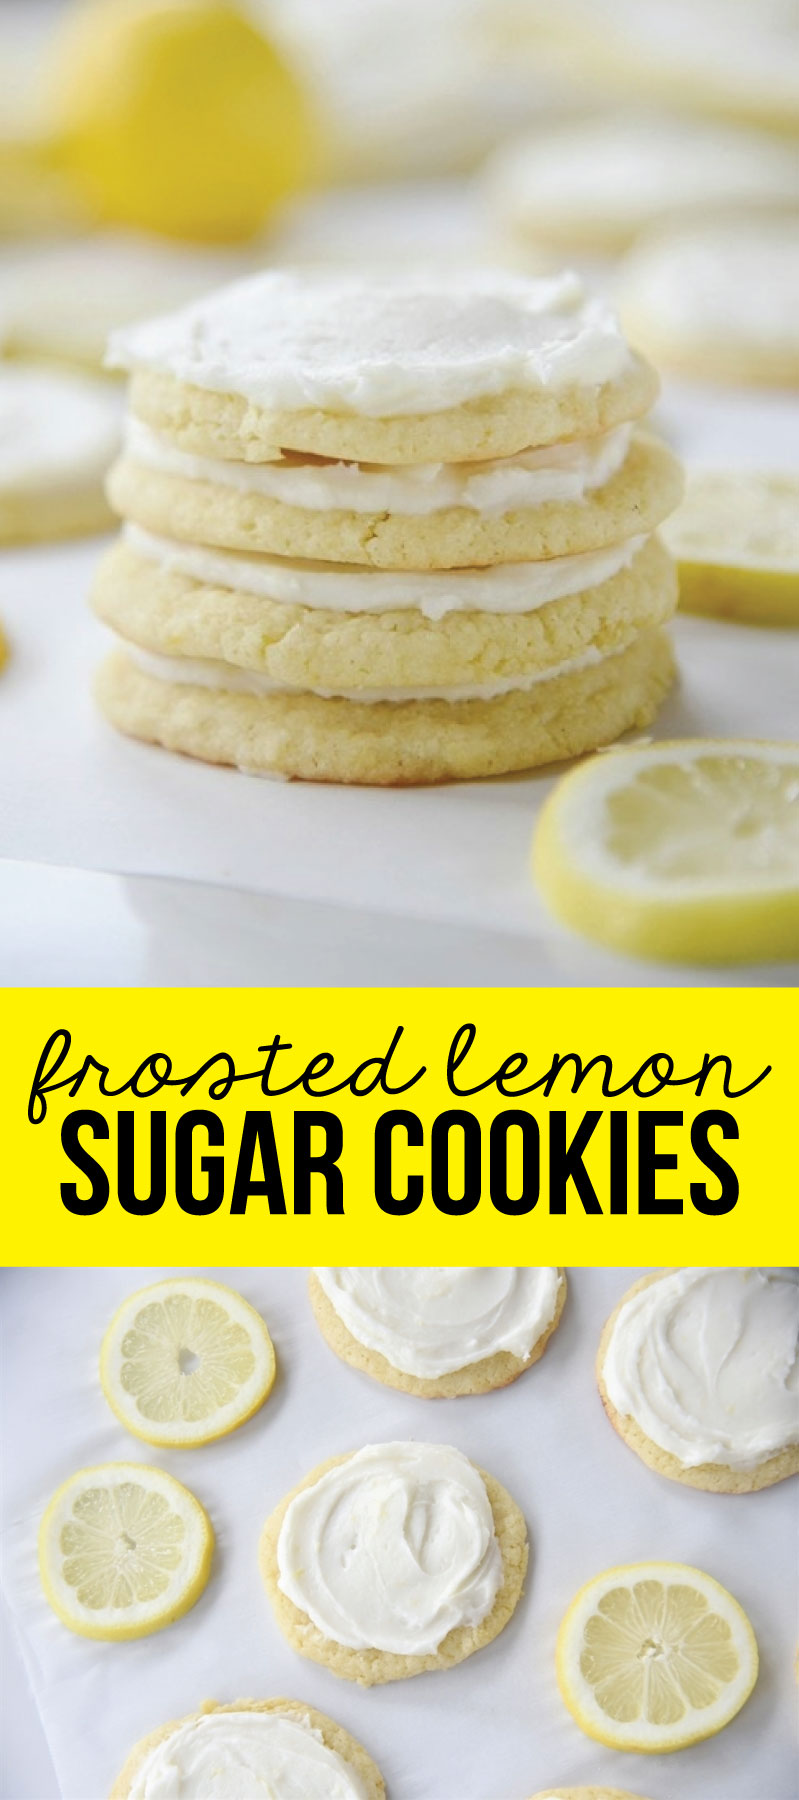 Frosted Lemon Sugar Cookies - these are amazing!